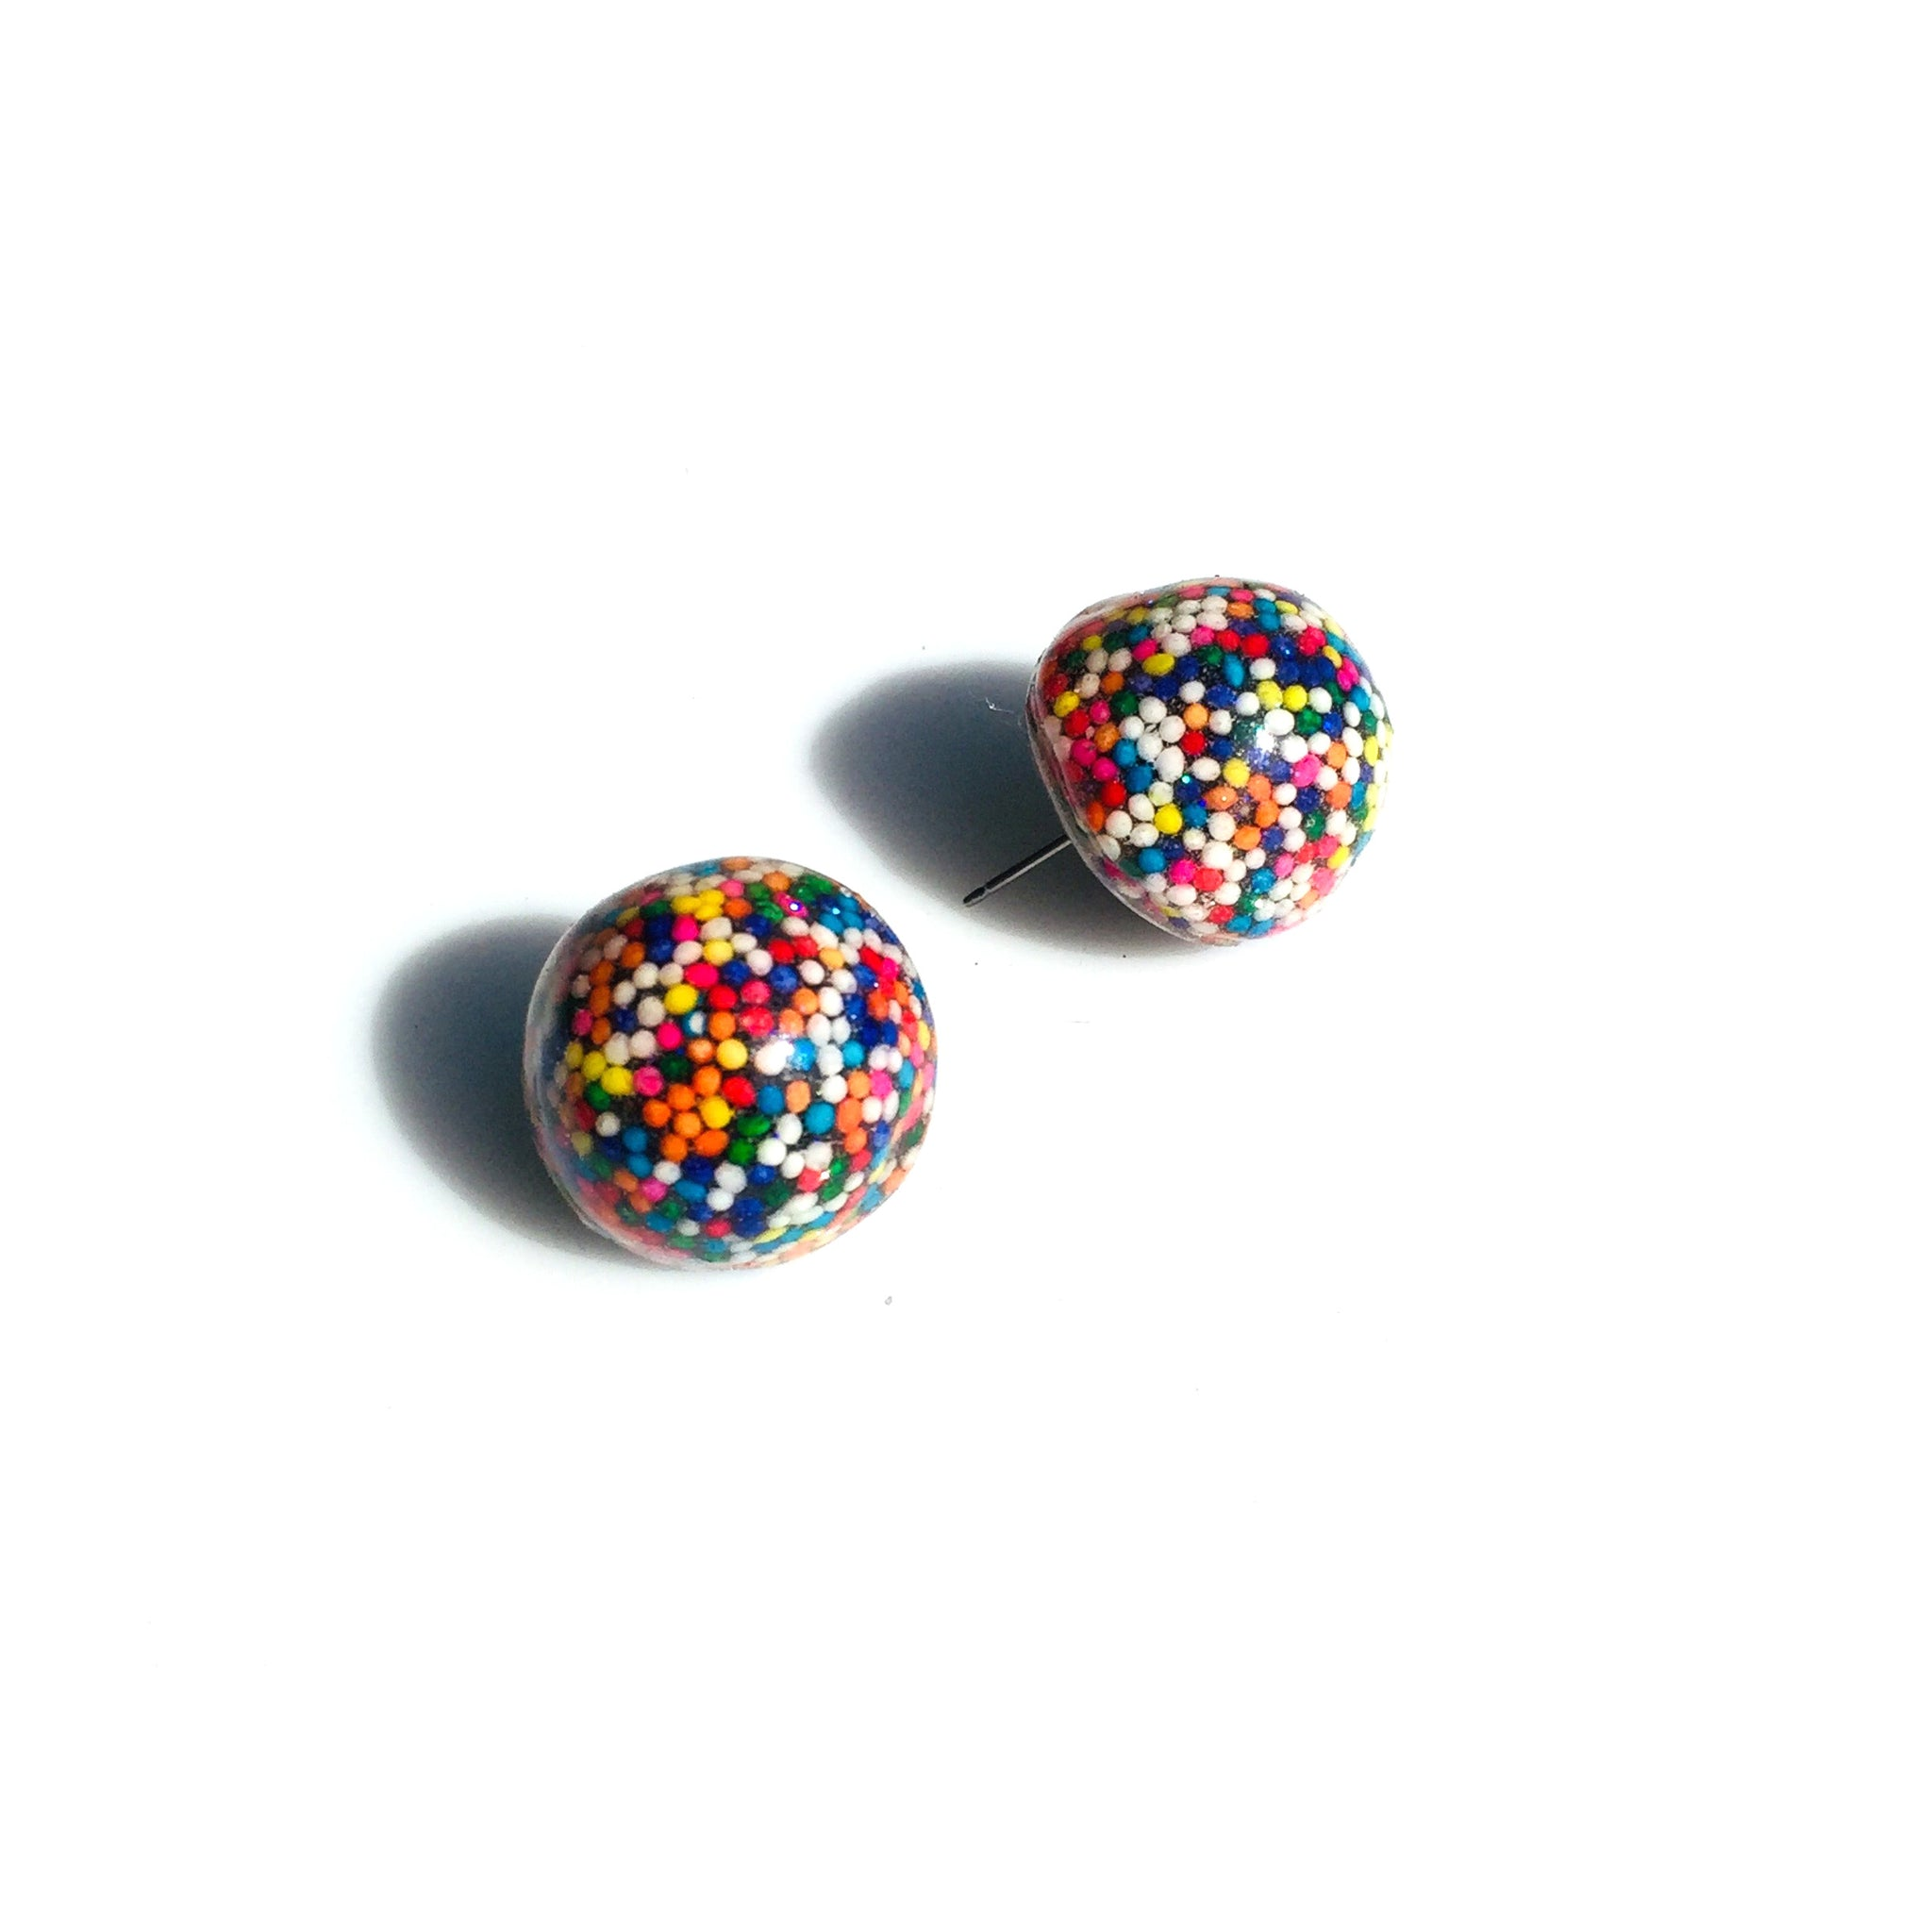 Sprinkle Licorice Candy Earrings - studs